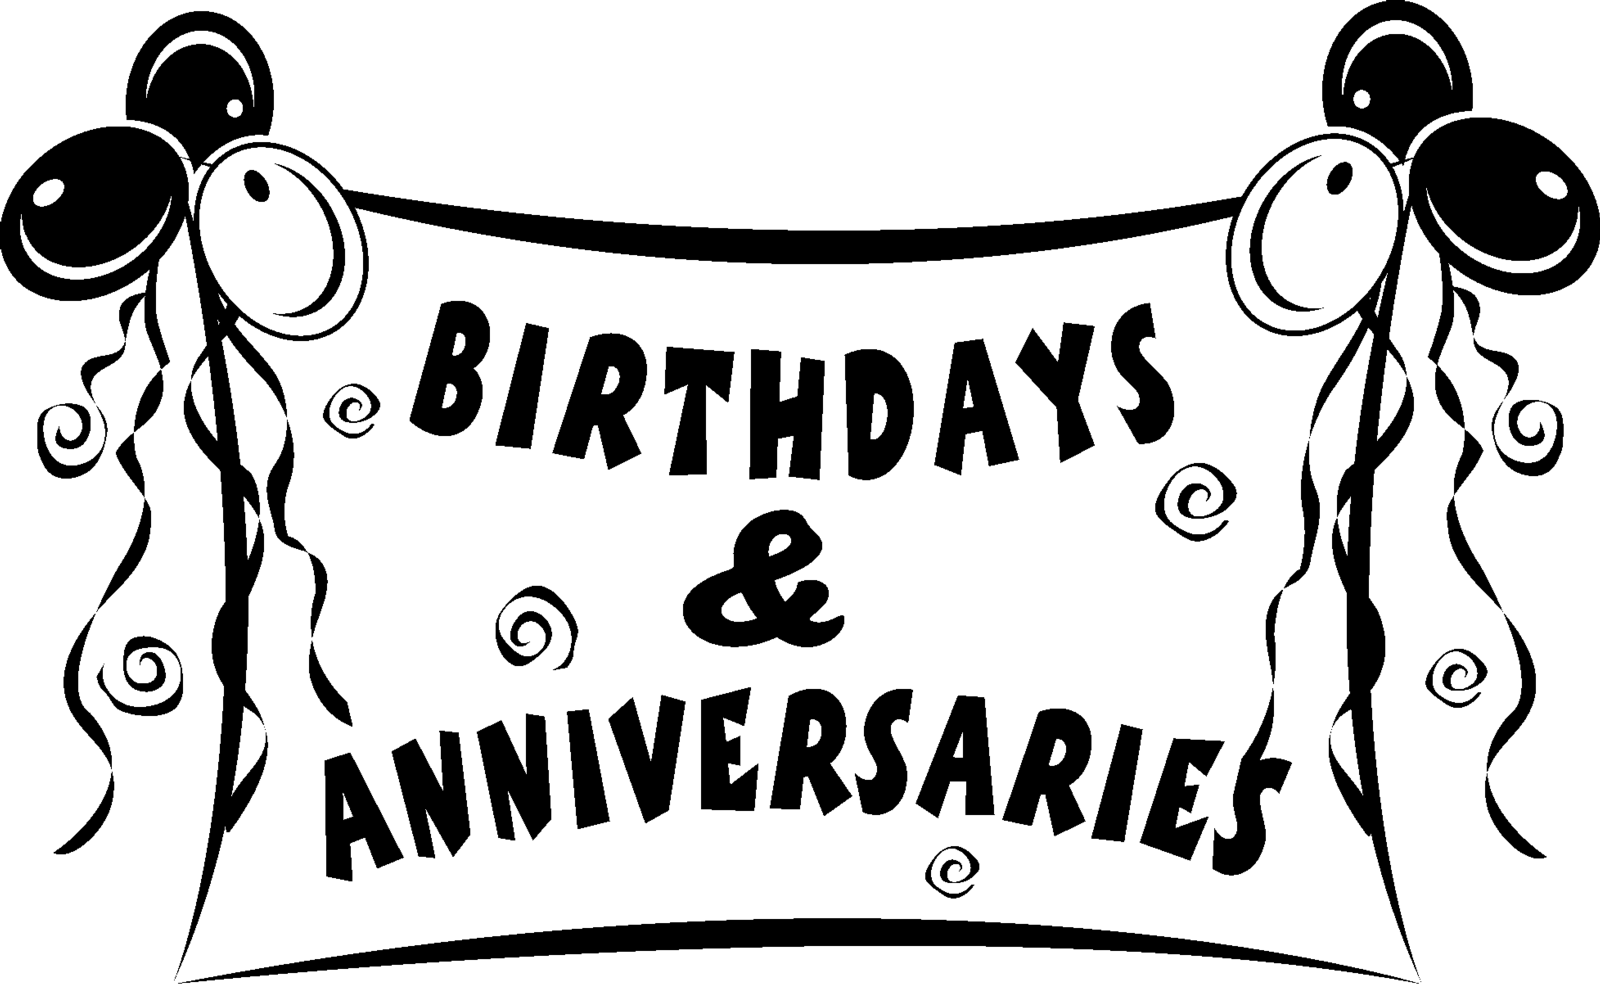 January Anniversaries Clipart